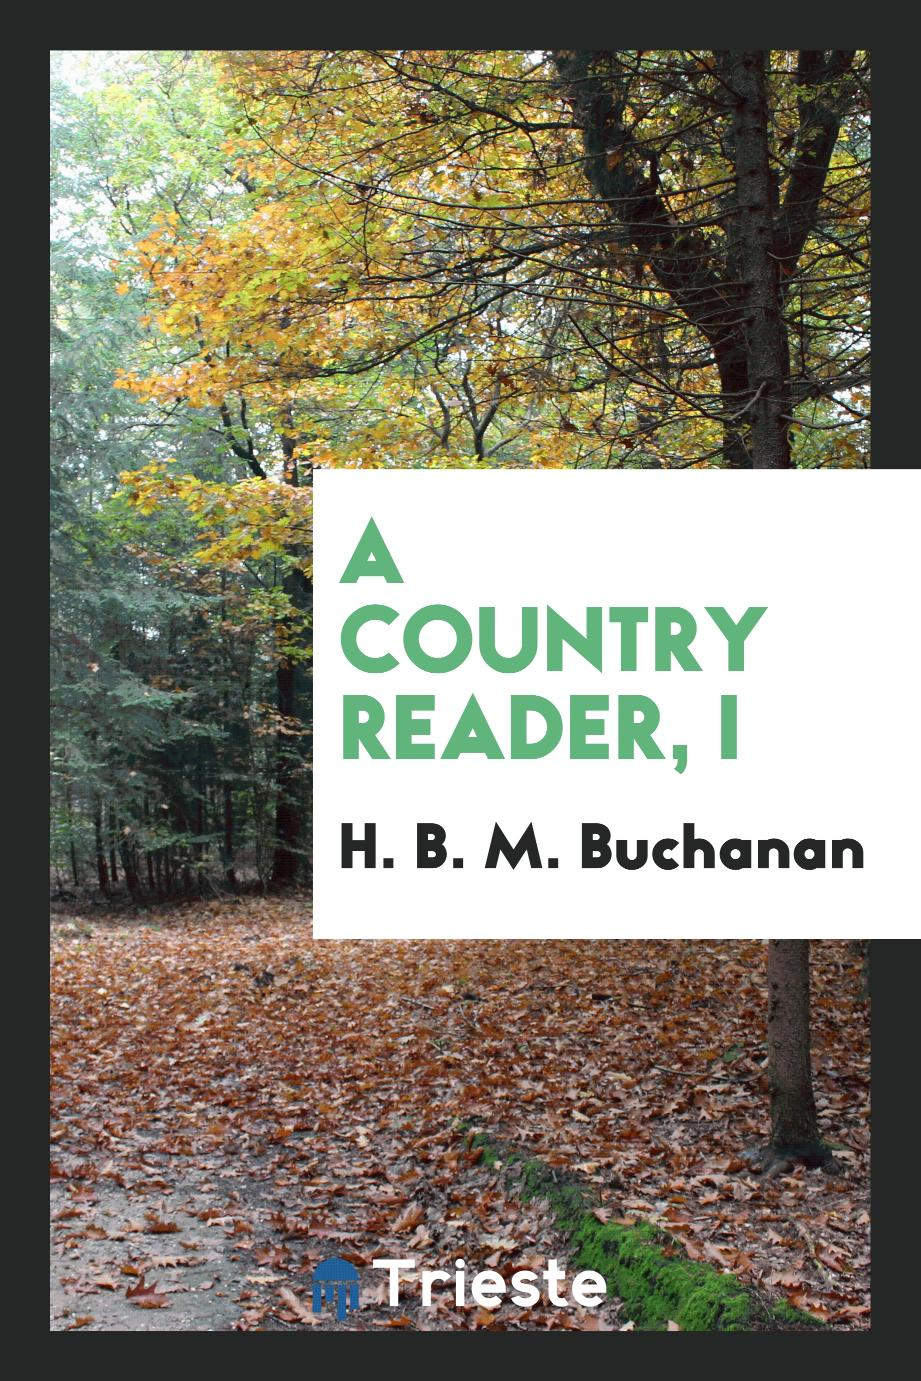 A country reader, I